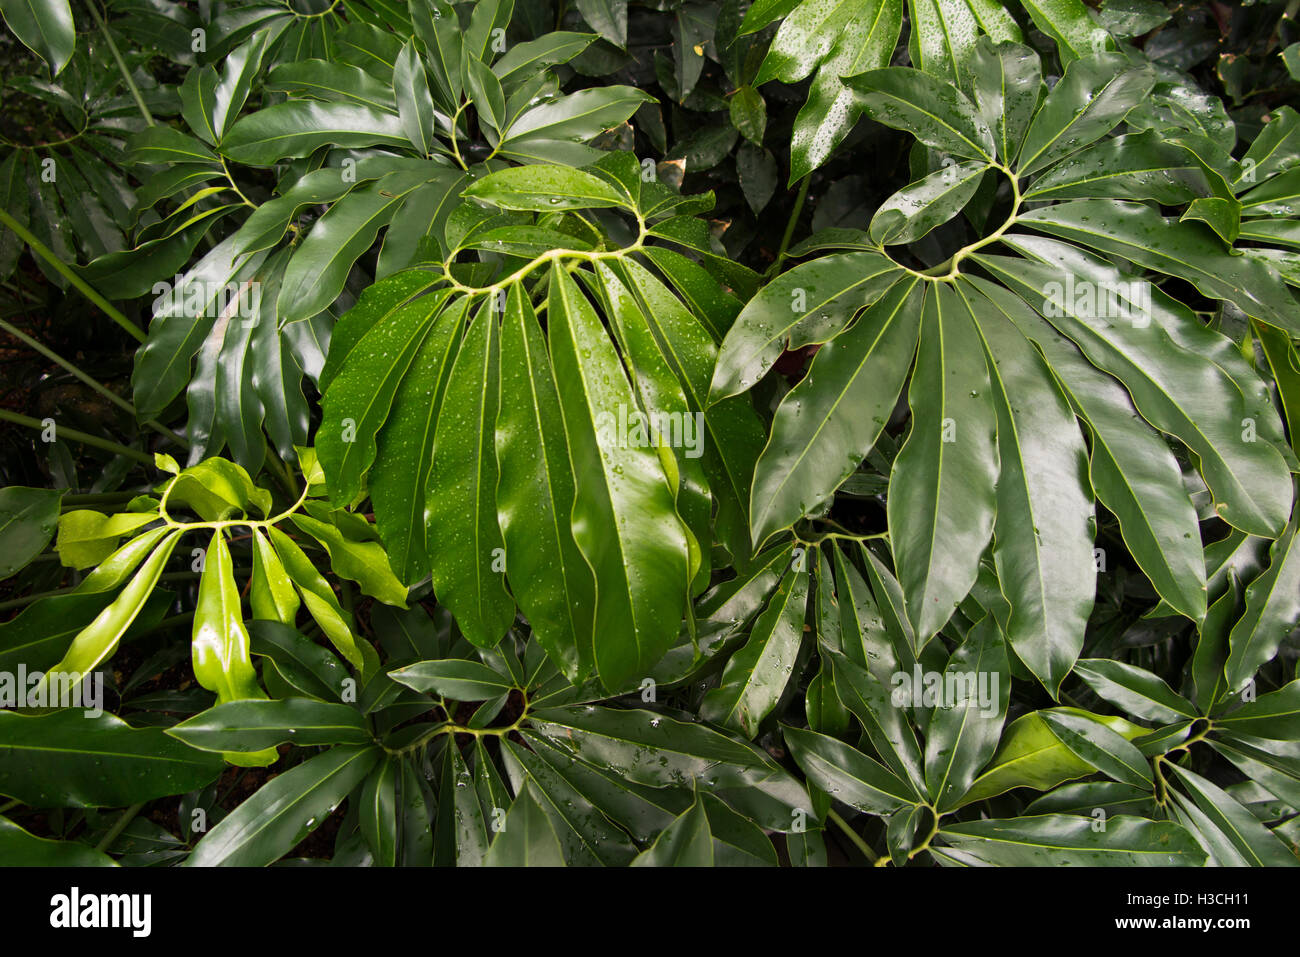 Waxy Leaves Stock Photos Waxy Leaves Stock Images Alamy